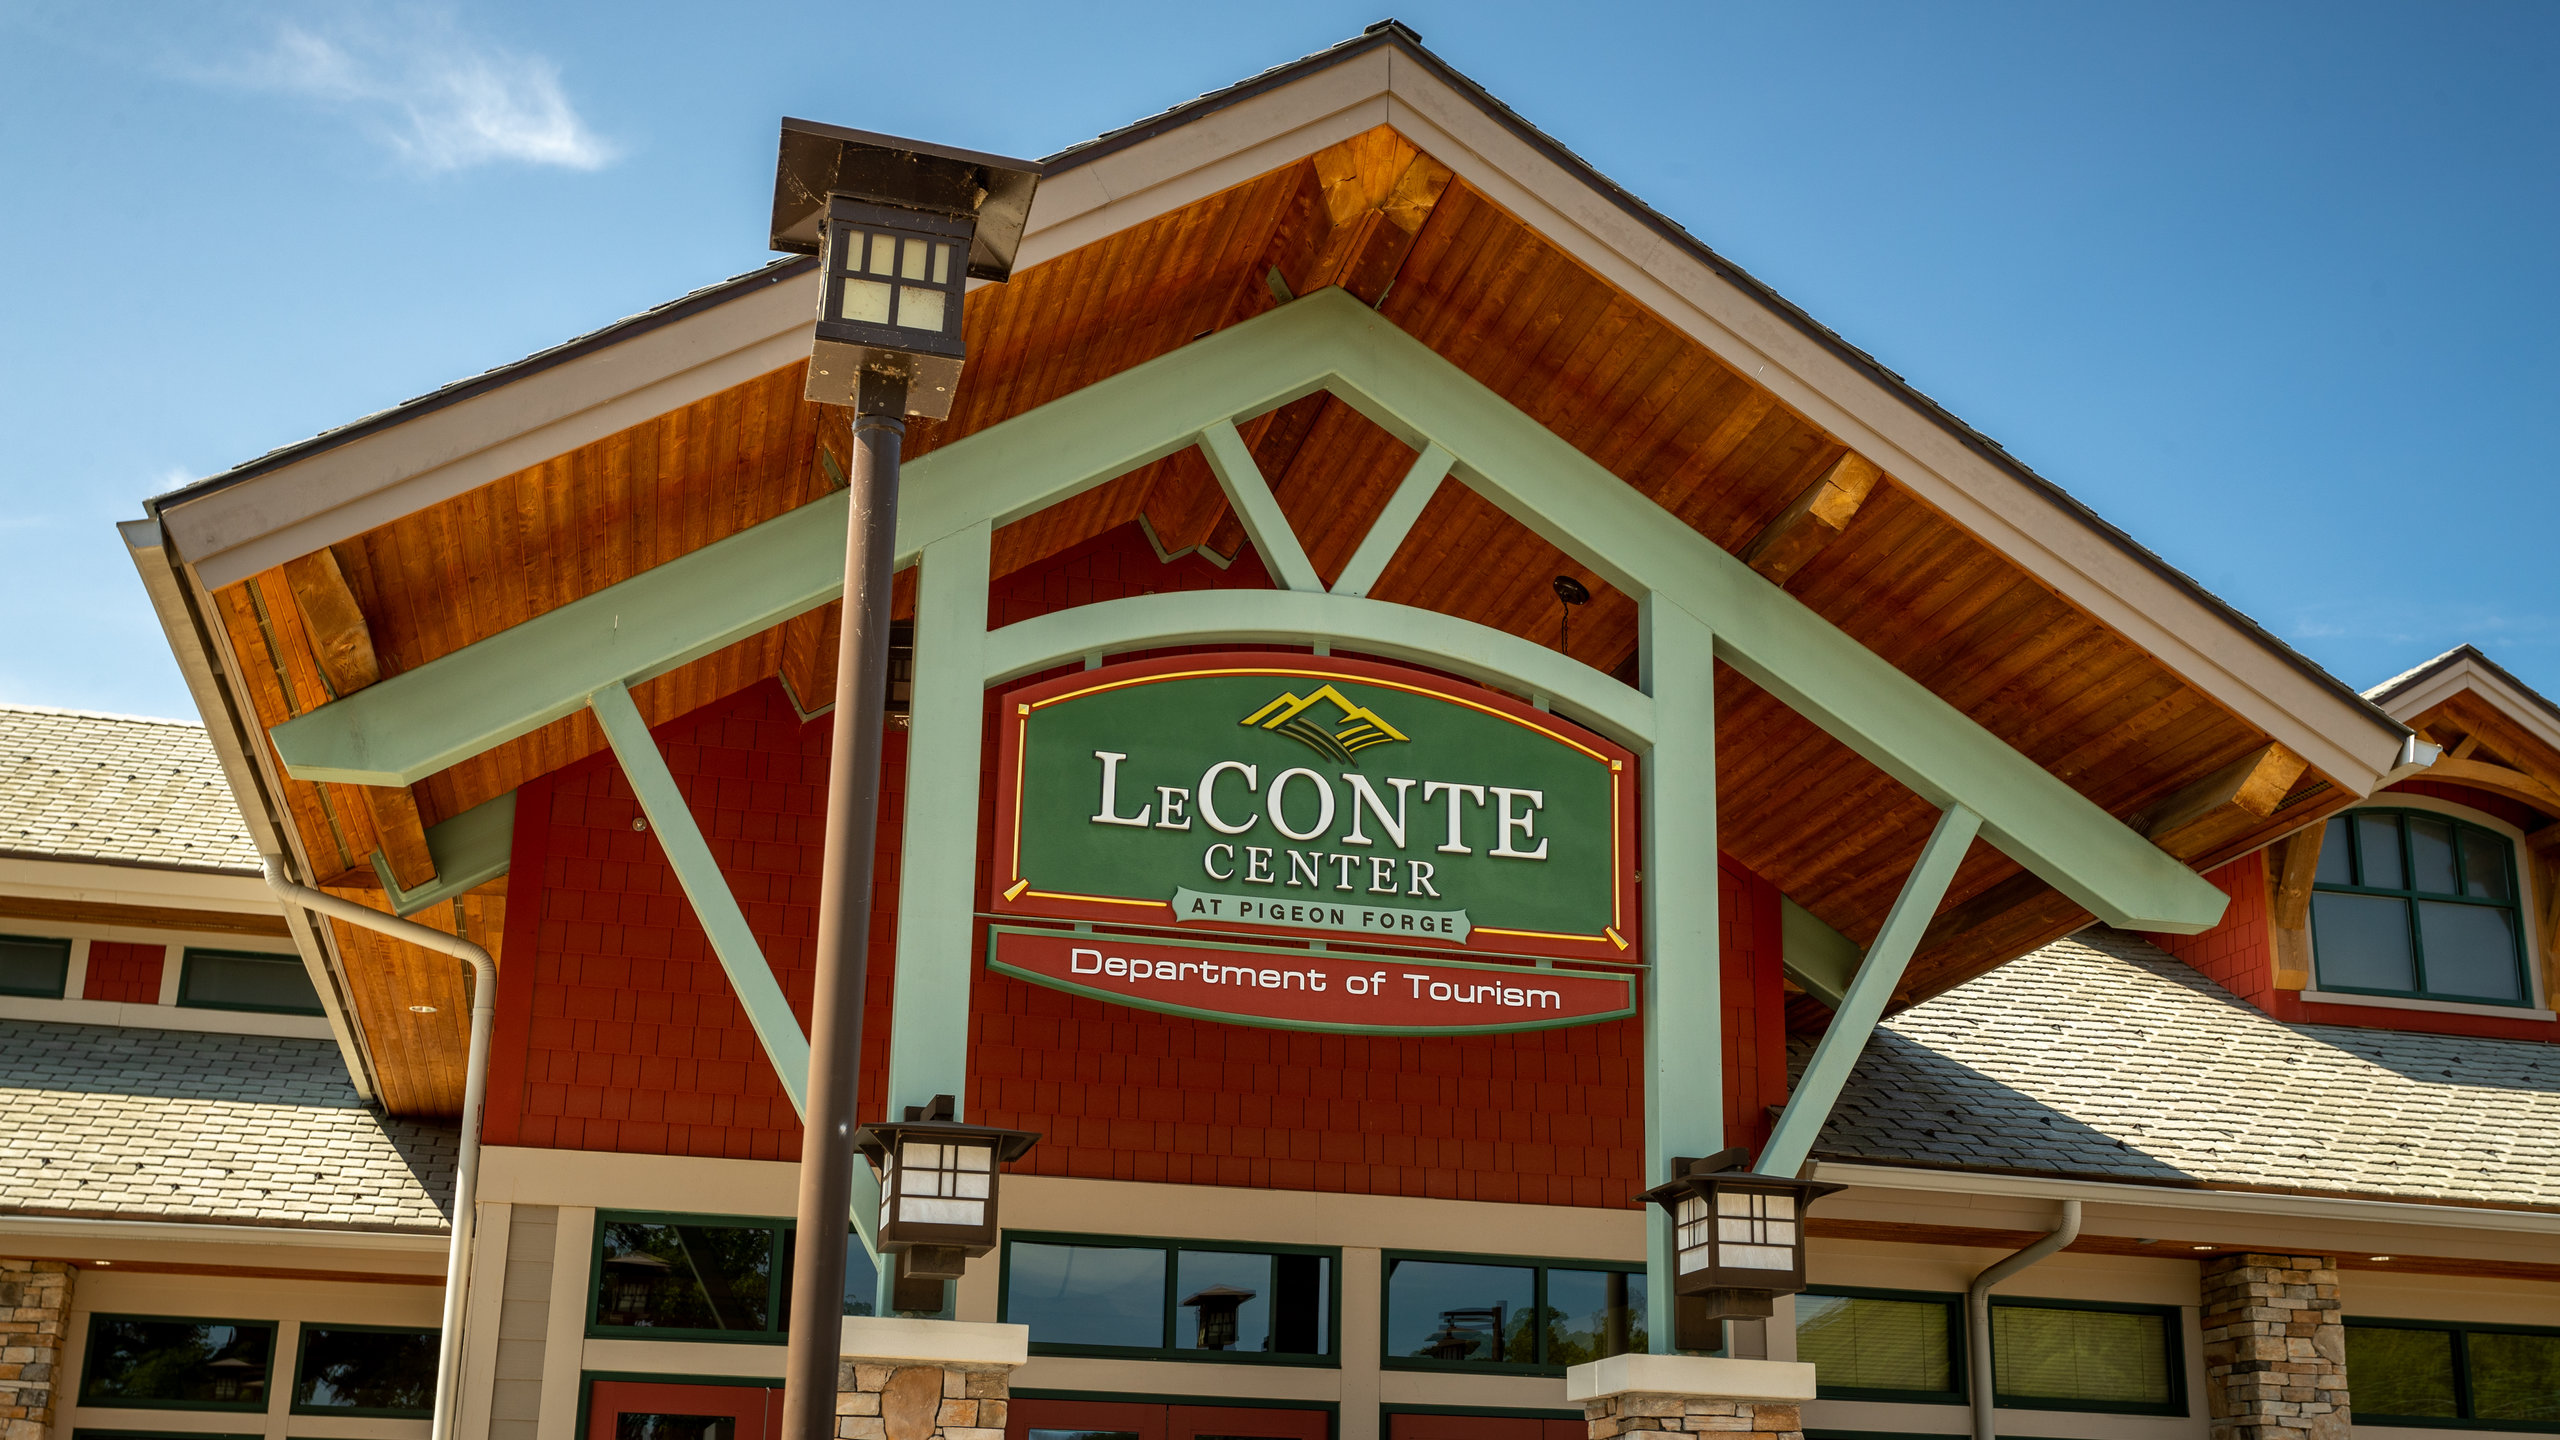 LeConte Center At Pigeon Forge, Pigeon Forge, Tennessee, United States of America